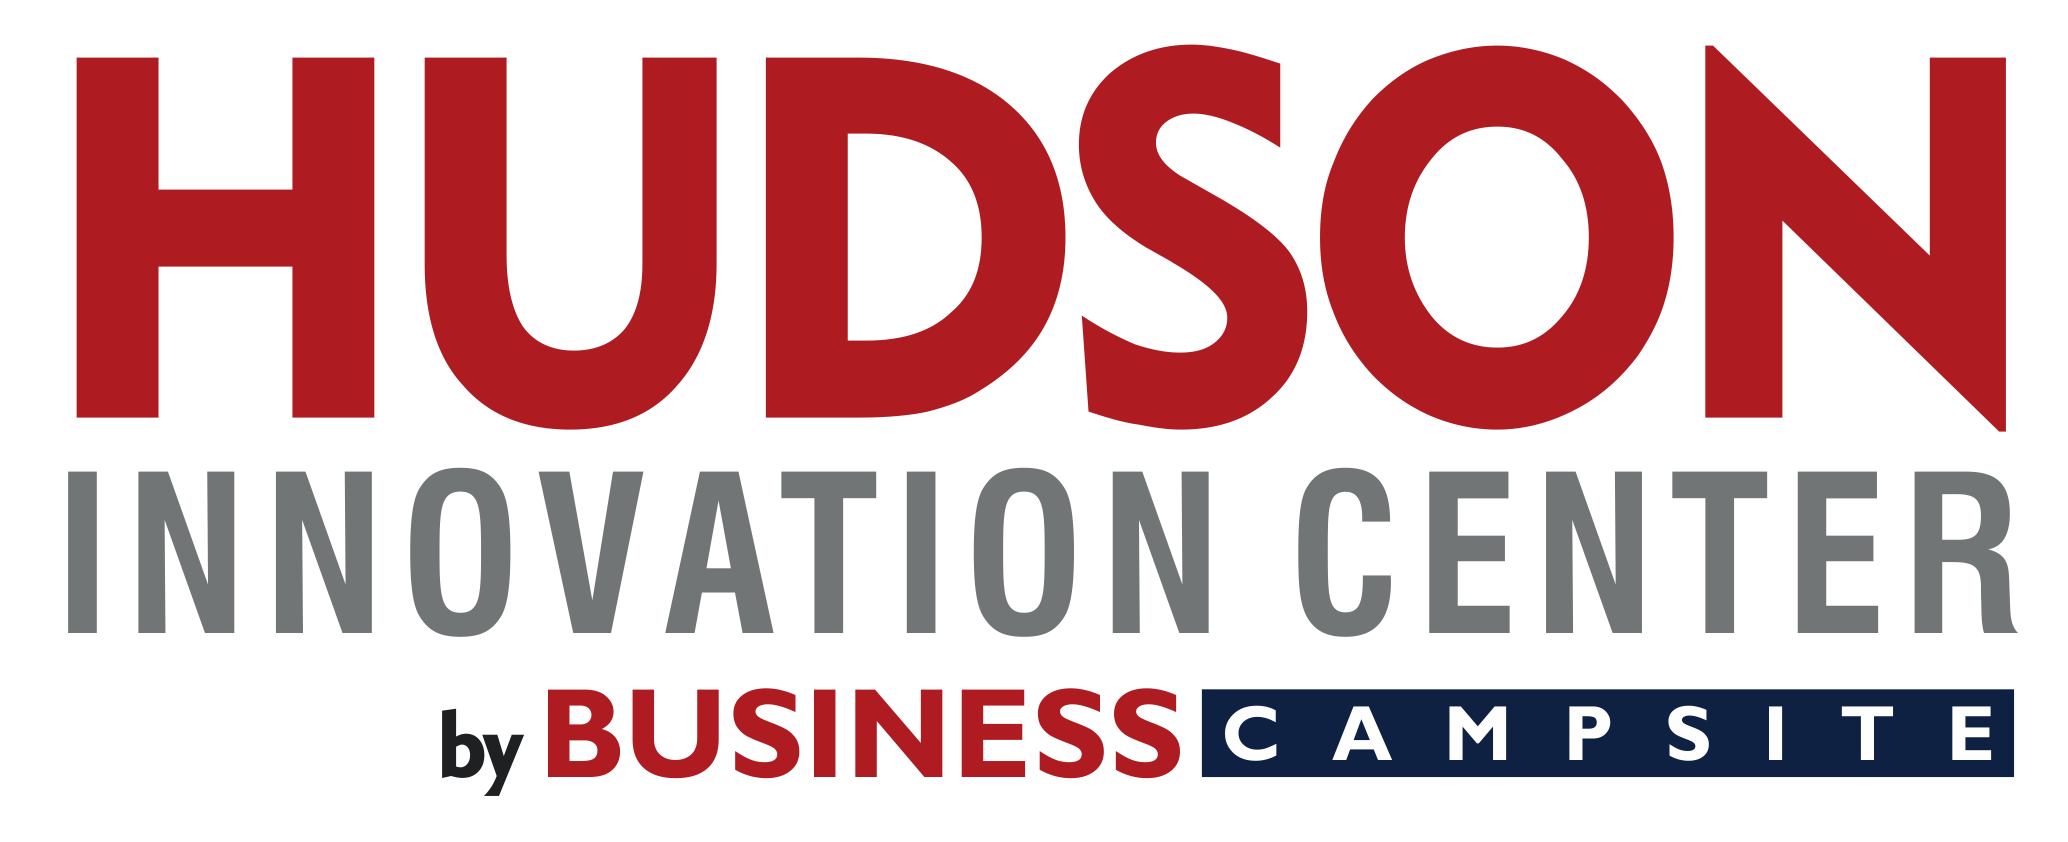 Hudson Innovation Center